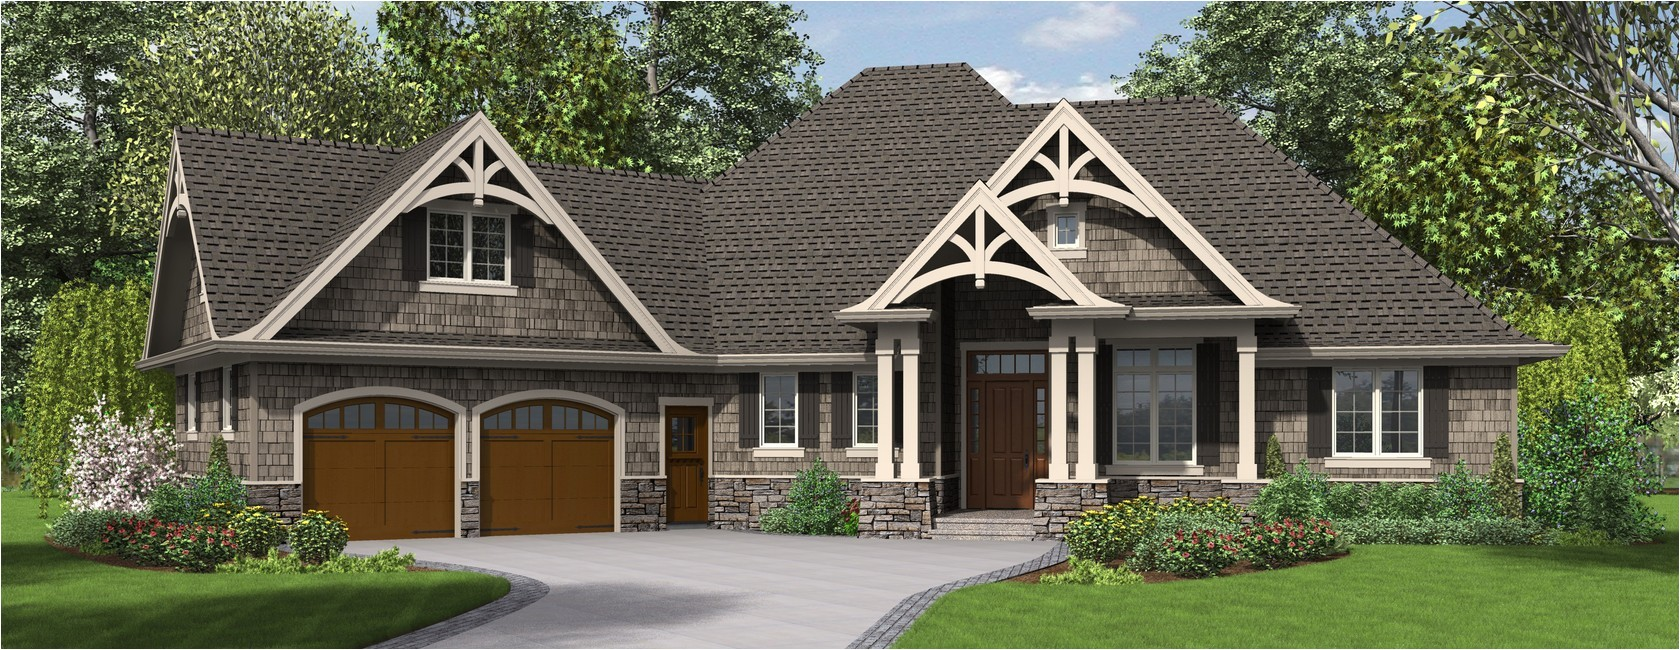 13 fresh most popular one story house plans